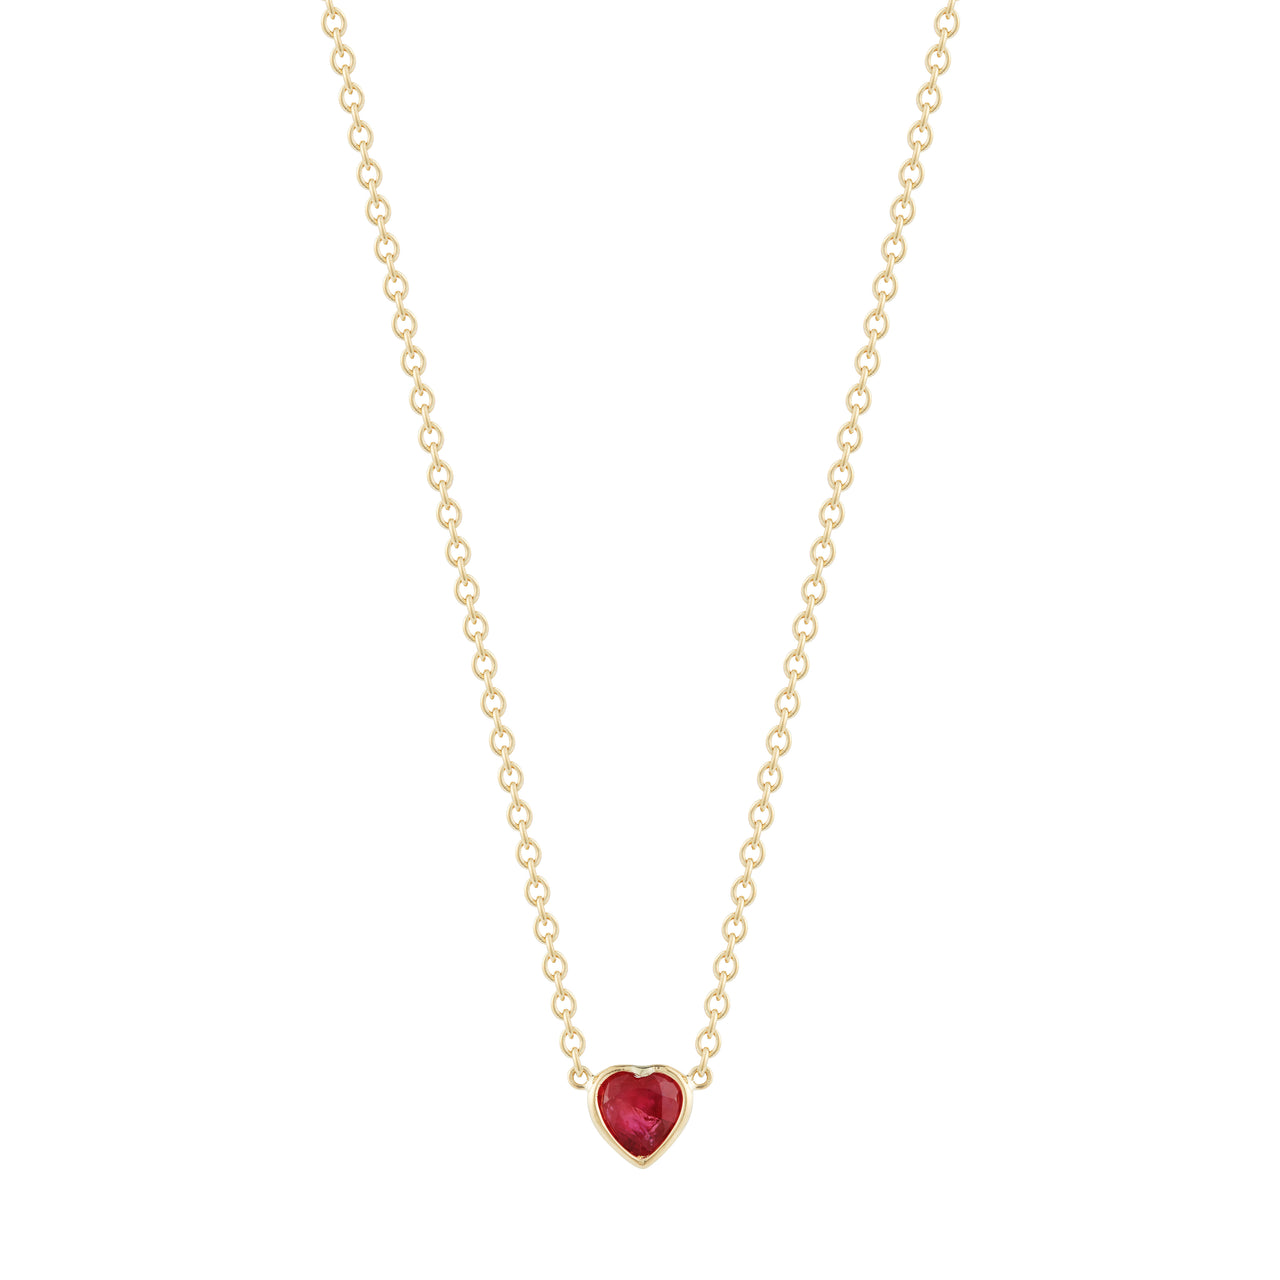 adorable and cute heart shaped red ruby on mid length 18k yellow gold chain by finn by candice pool neistat